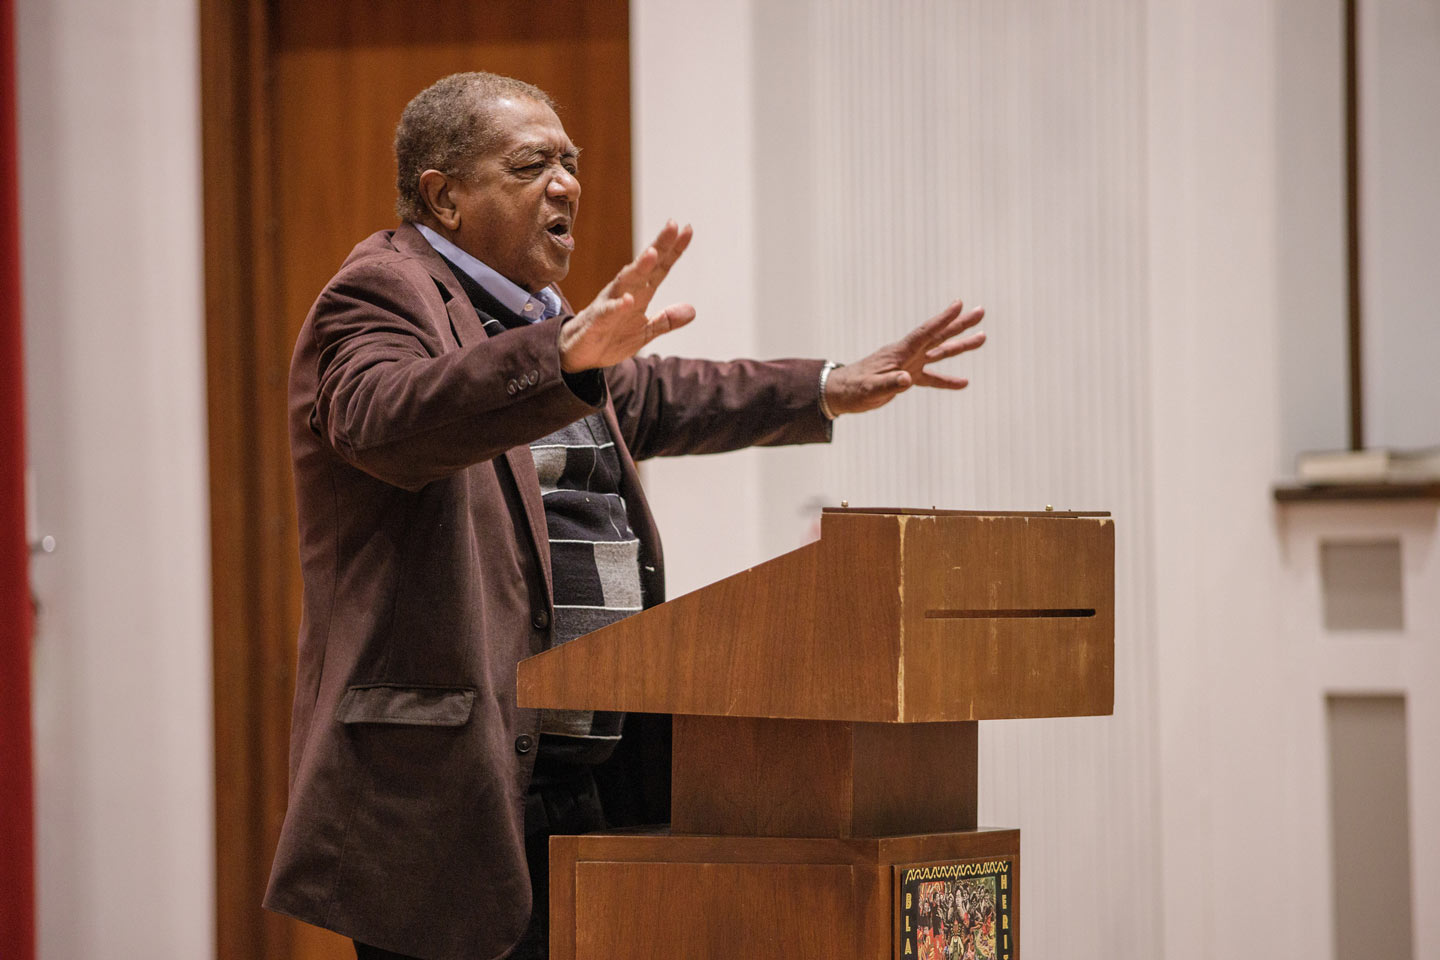 Bobby Seale, co-founder and national chairman of the Black Panther Party, addresses a crowd in Colton Chapel Feb. 12 as Lafayette's Black History Month keynote speaker.